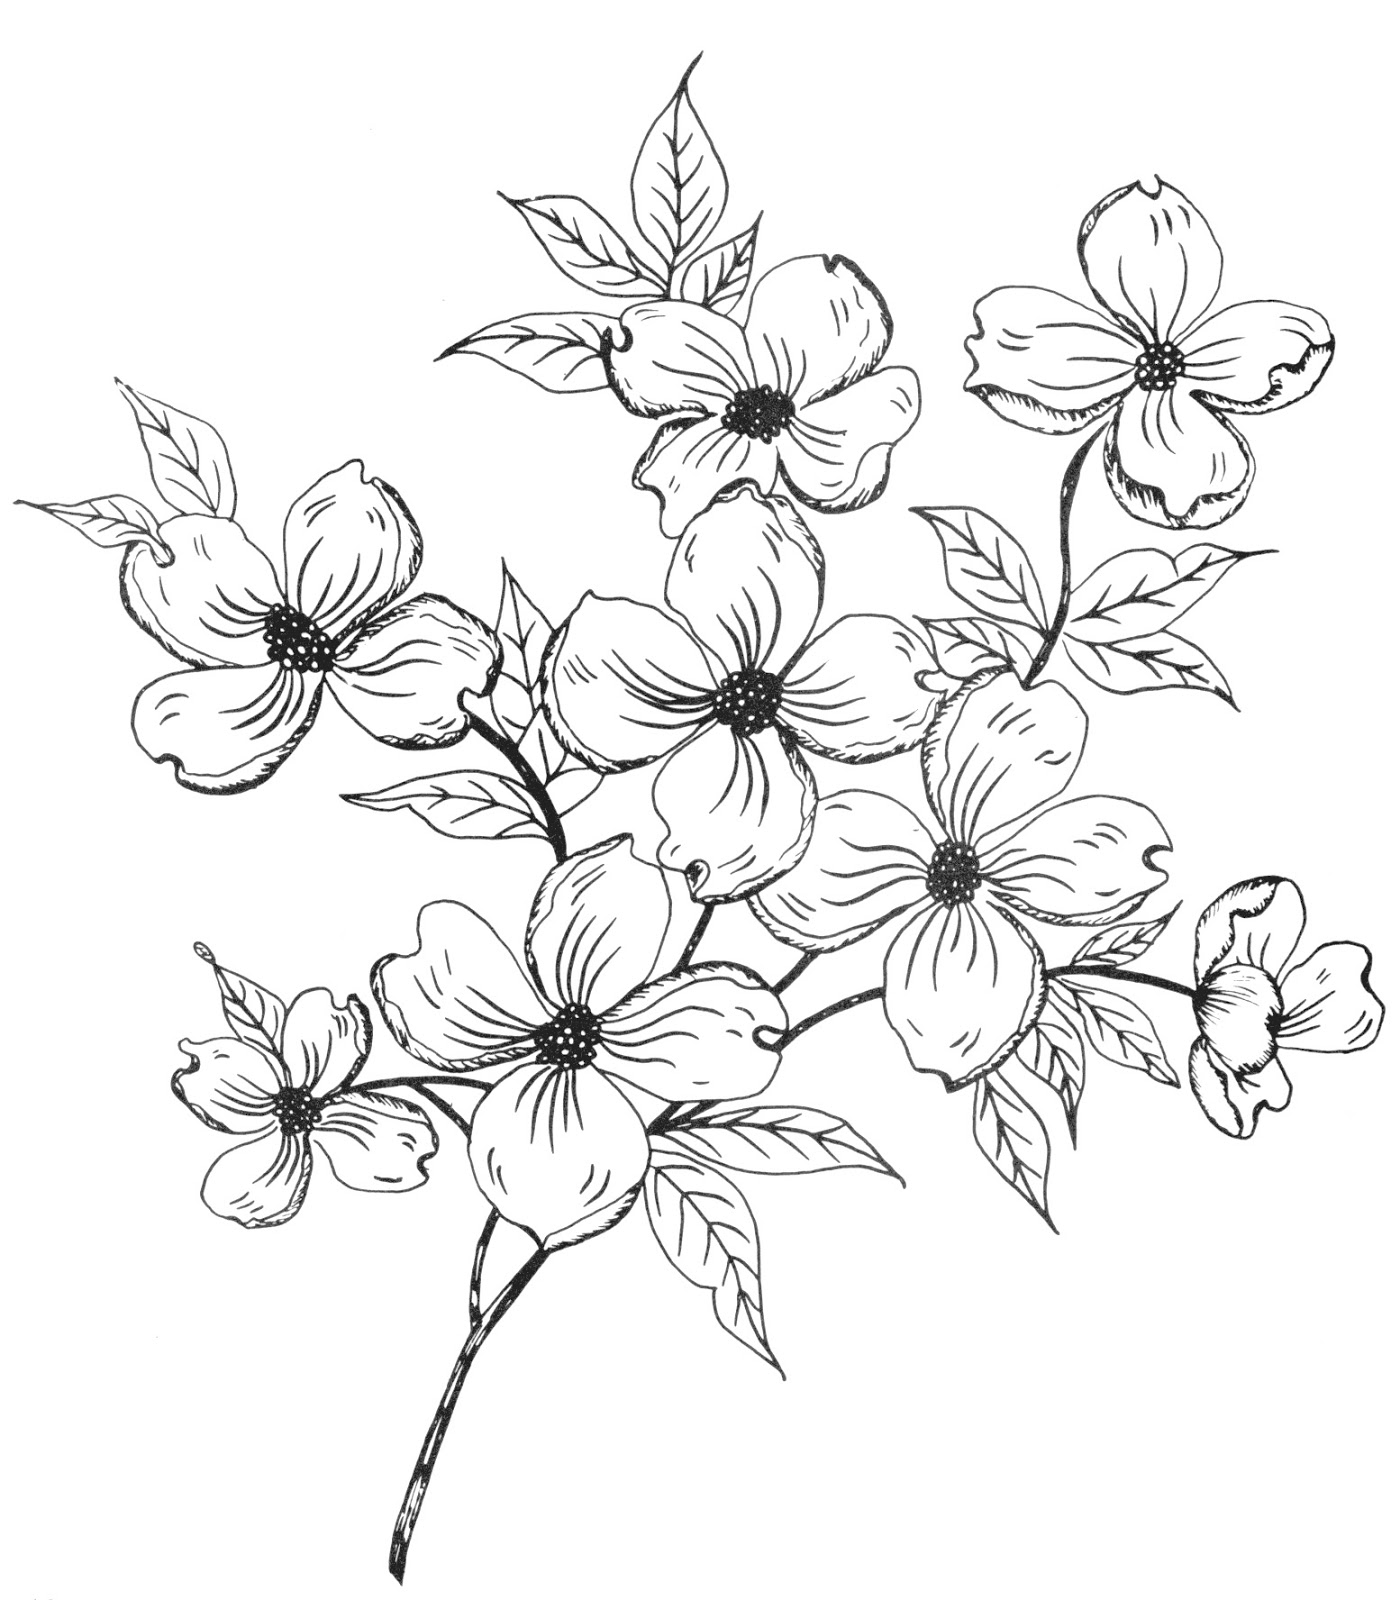 1400x1600 Wall Painting Images Rose Drawing Tutorial Flower Drawings